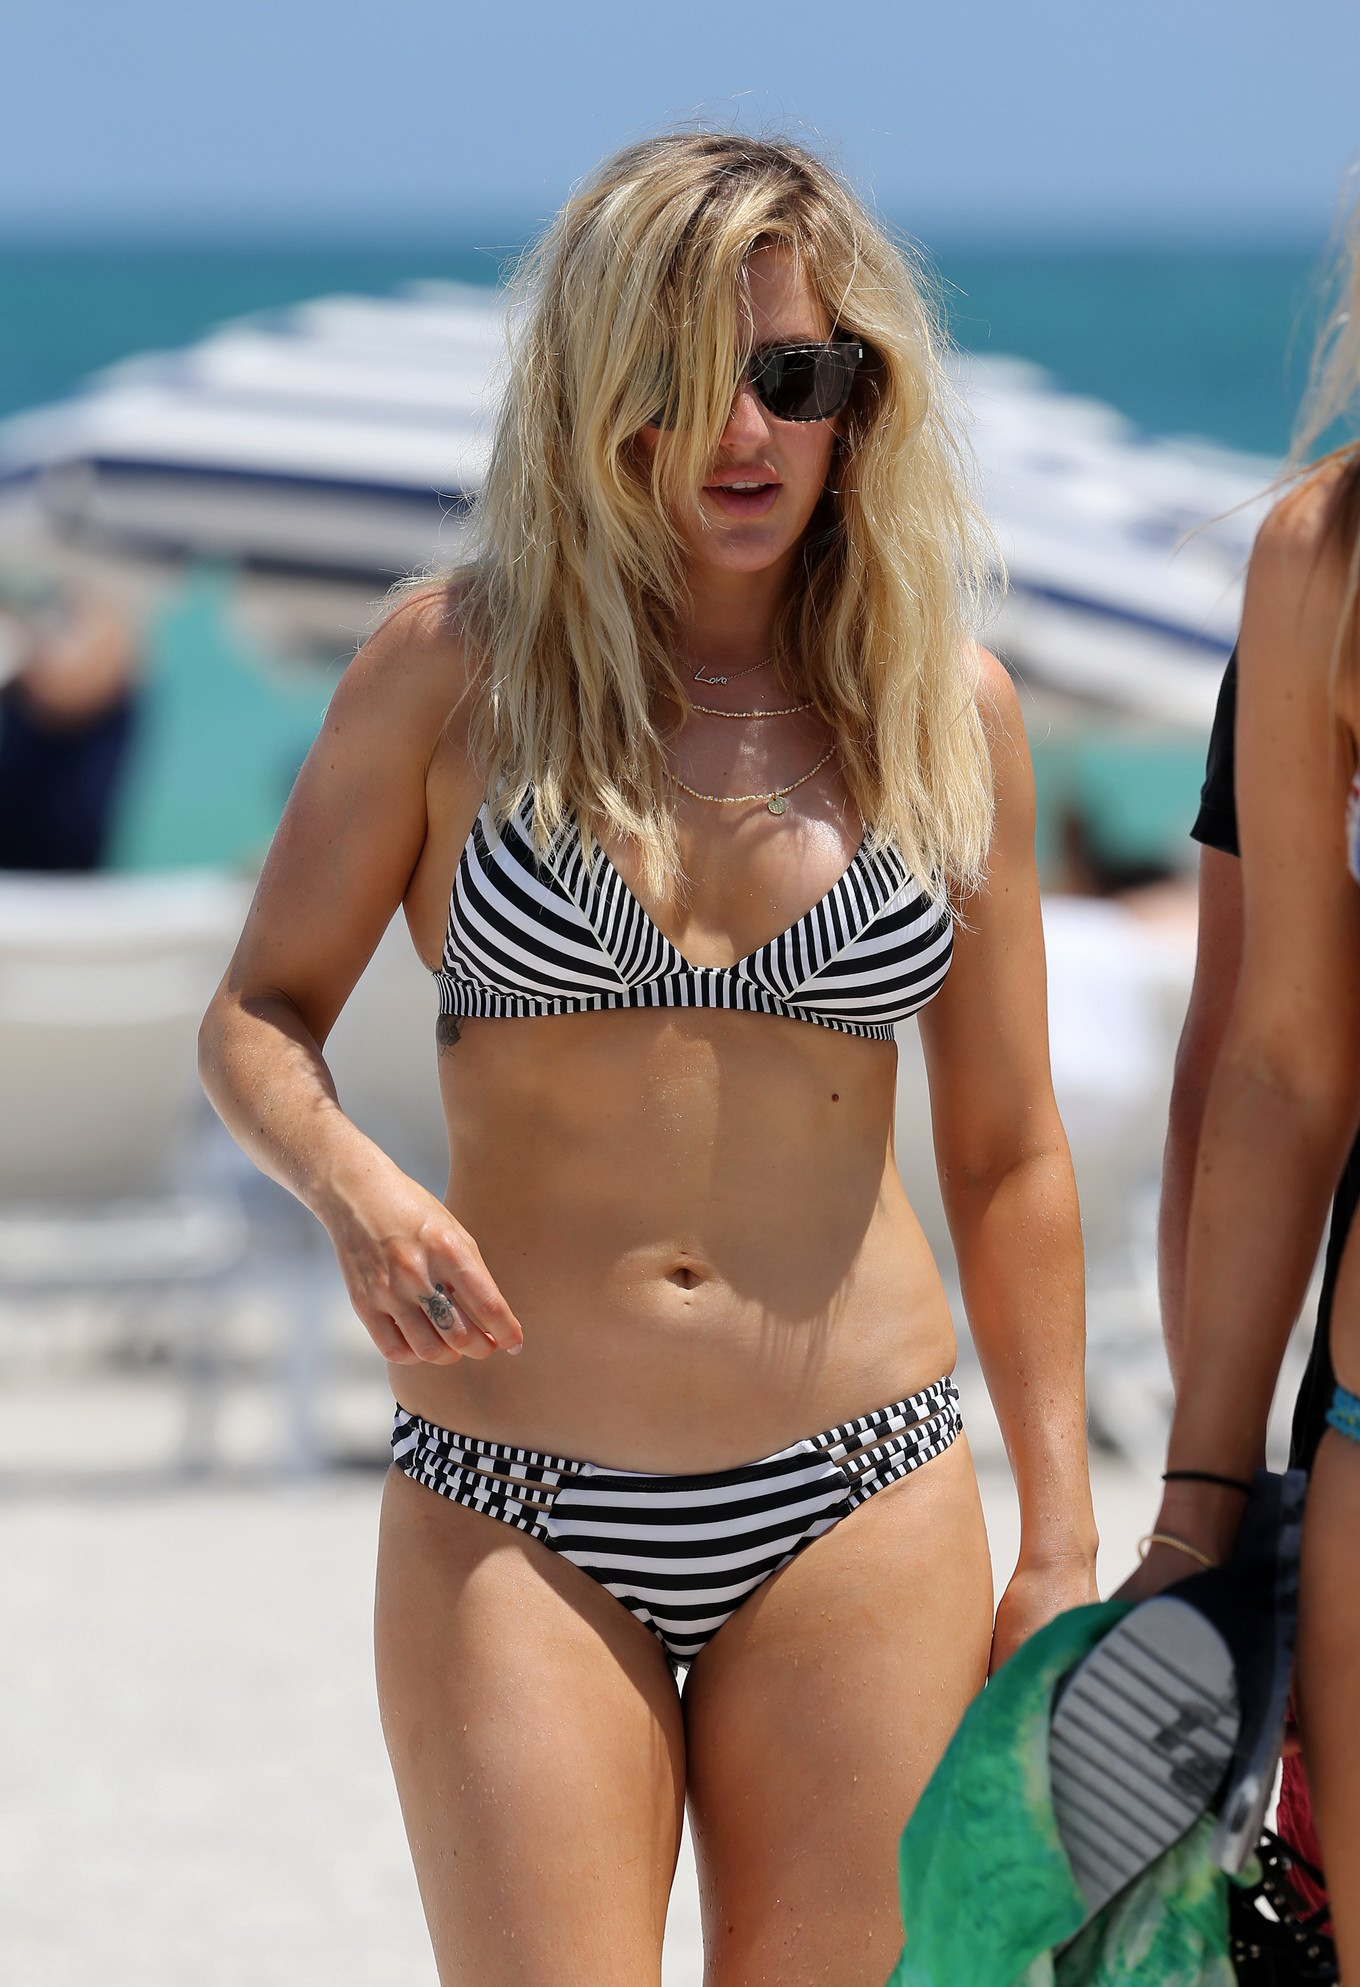 her hot body in a monochrome striped bikini at the beach in miami